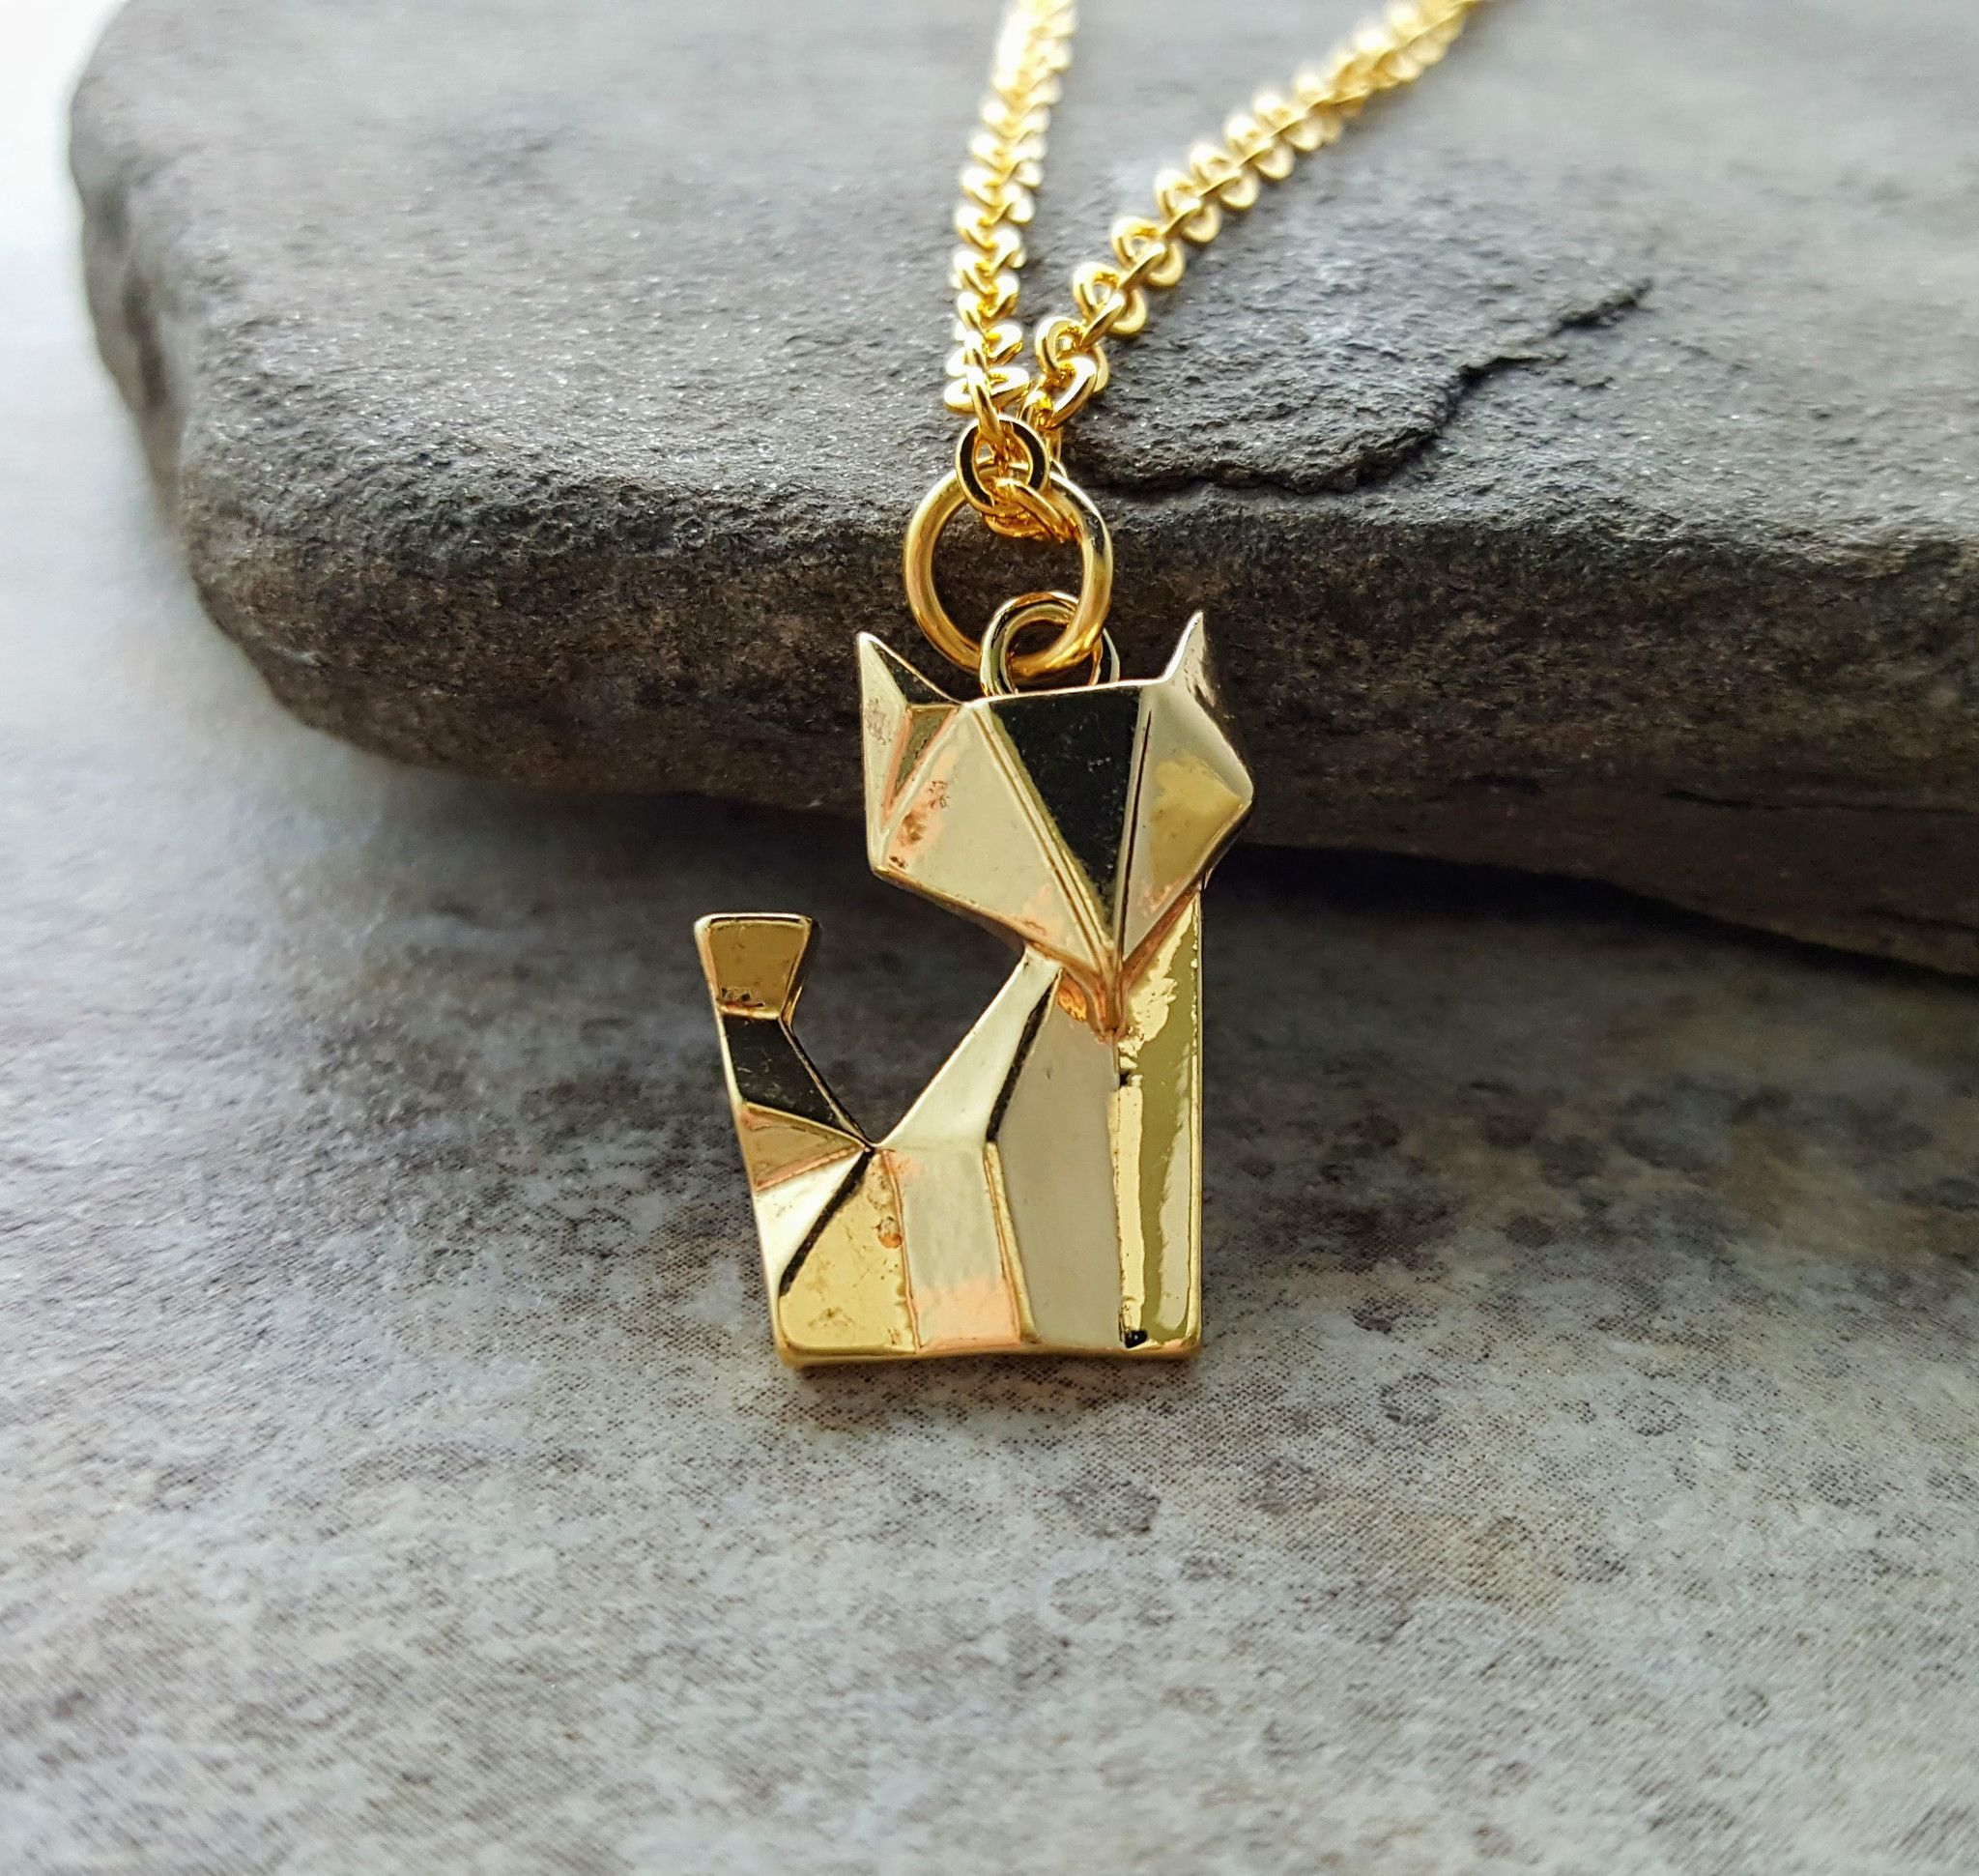 Small ORIGAMI FOX sterling silver charm delicate necklace minimalistic charm jewelry